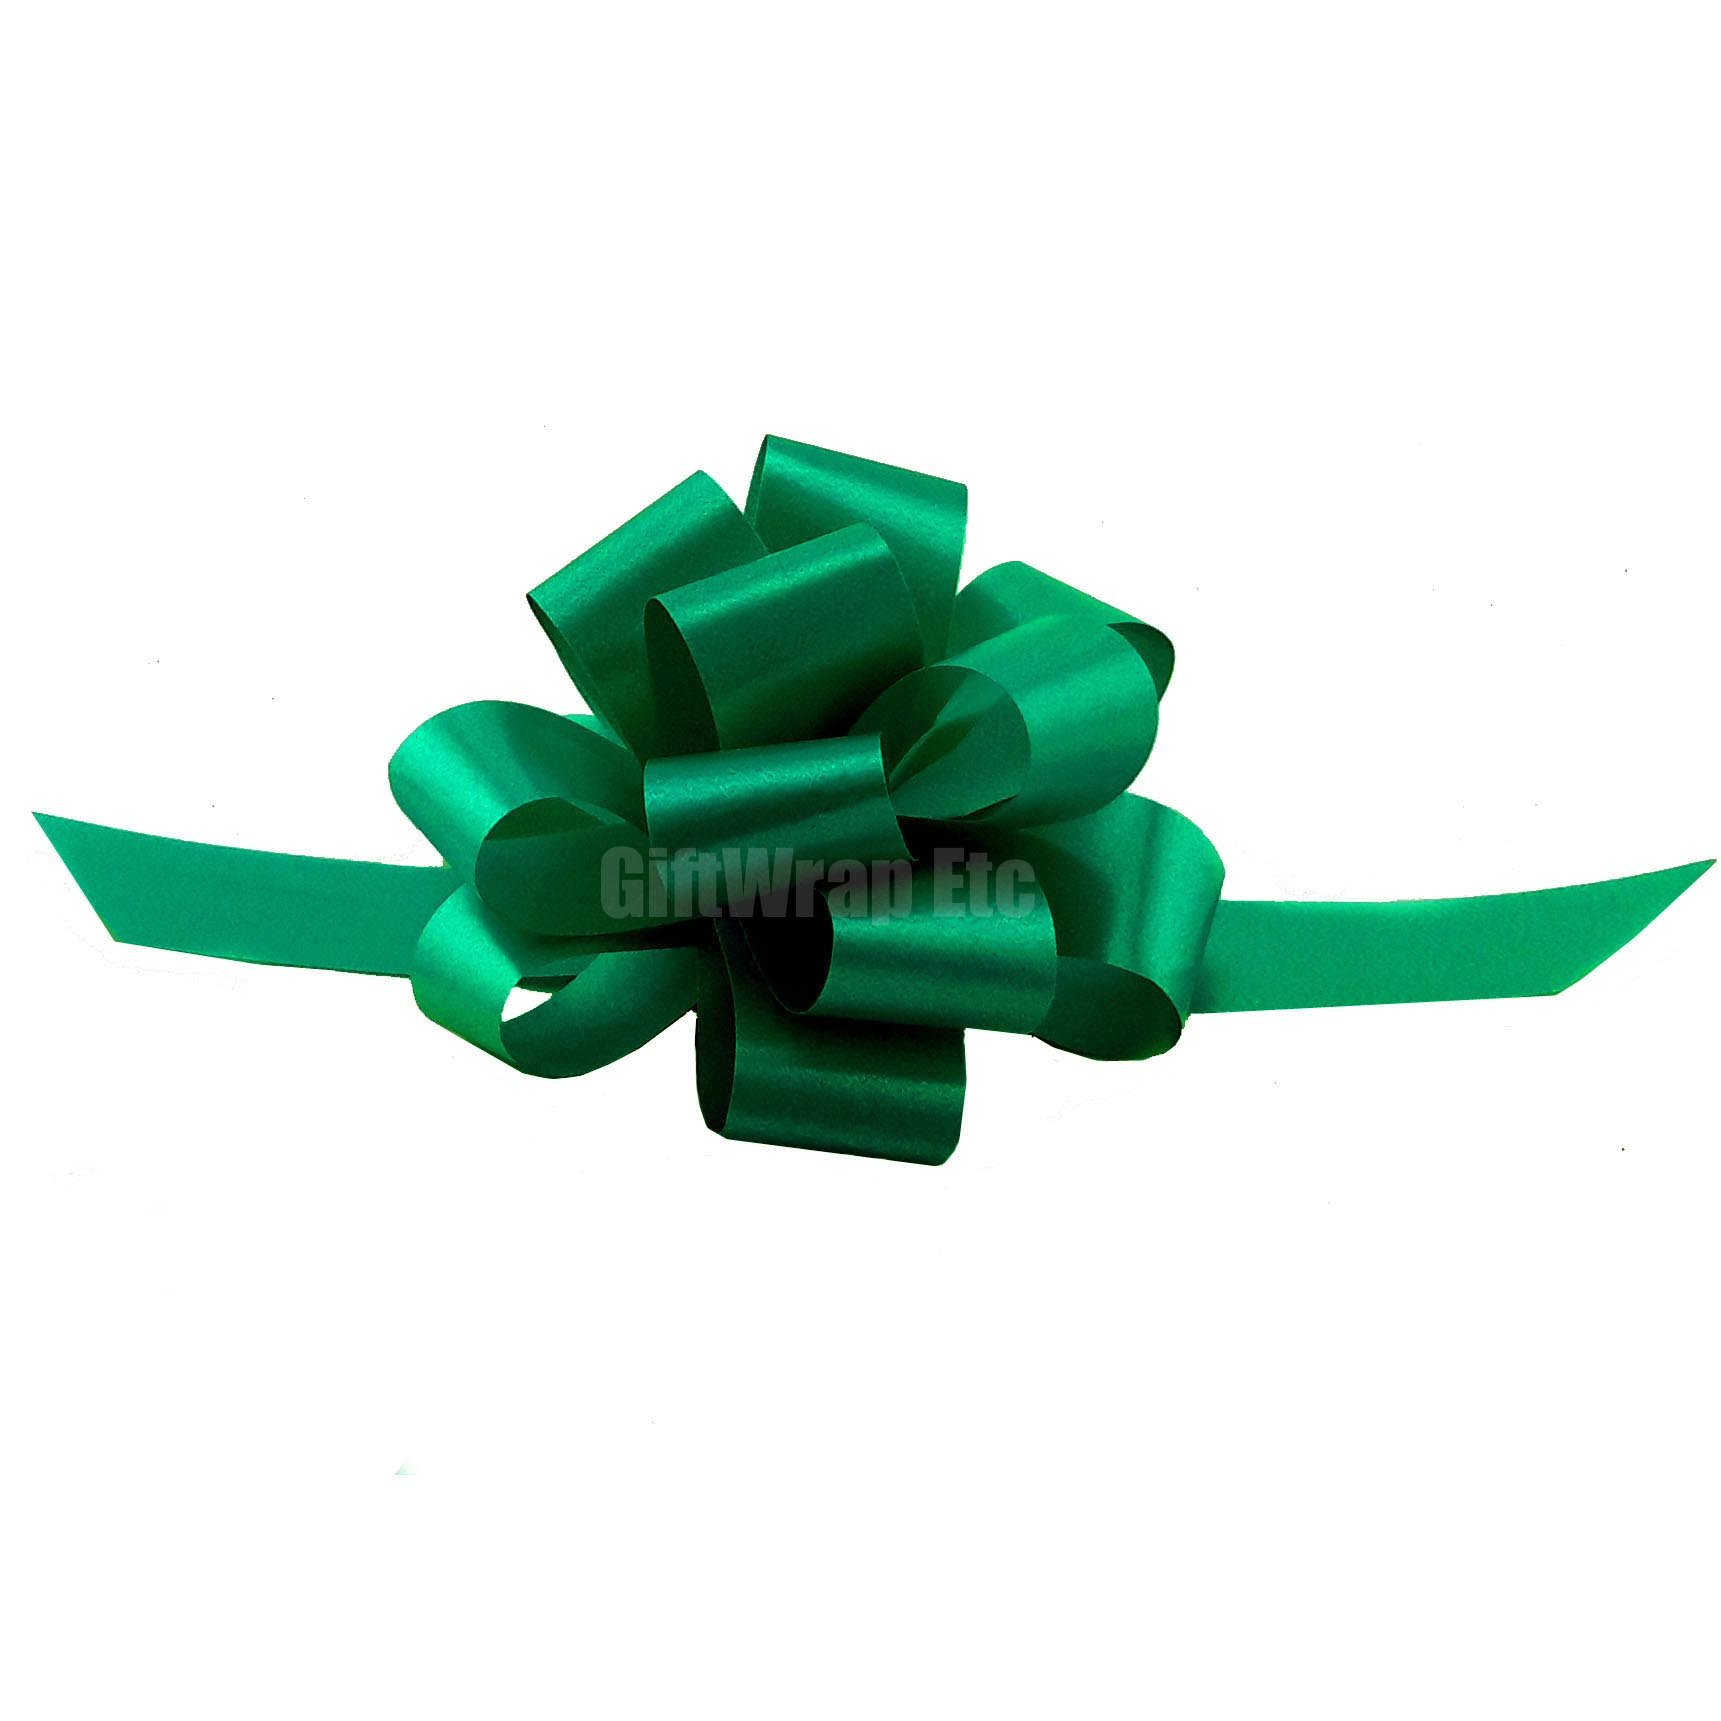 "Emerald Green Decorative Gift Pull Bows - 5"" Wide, Set of 10, St. Patrick's Day Decorations"